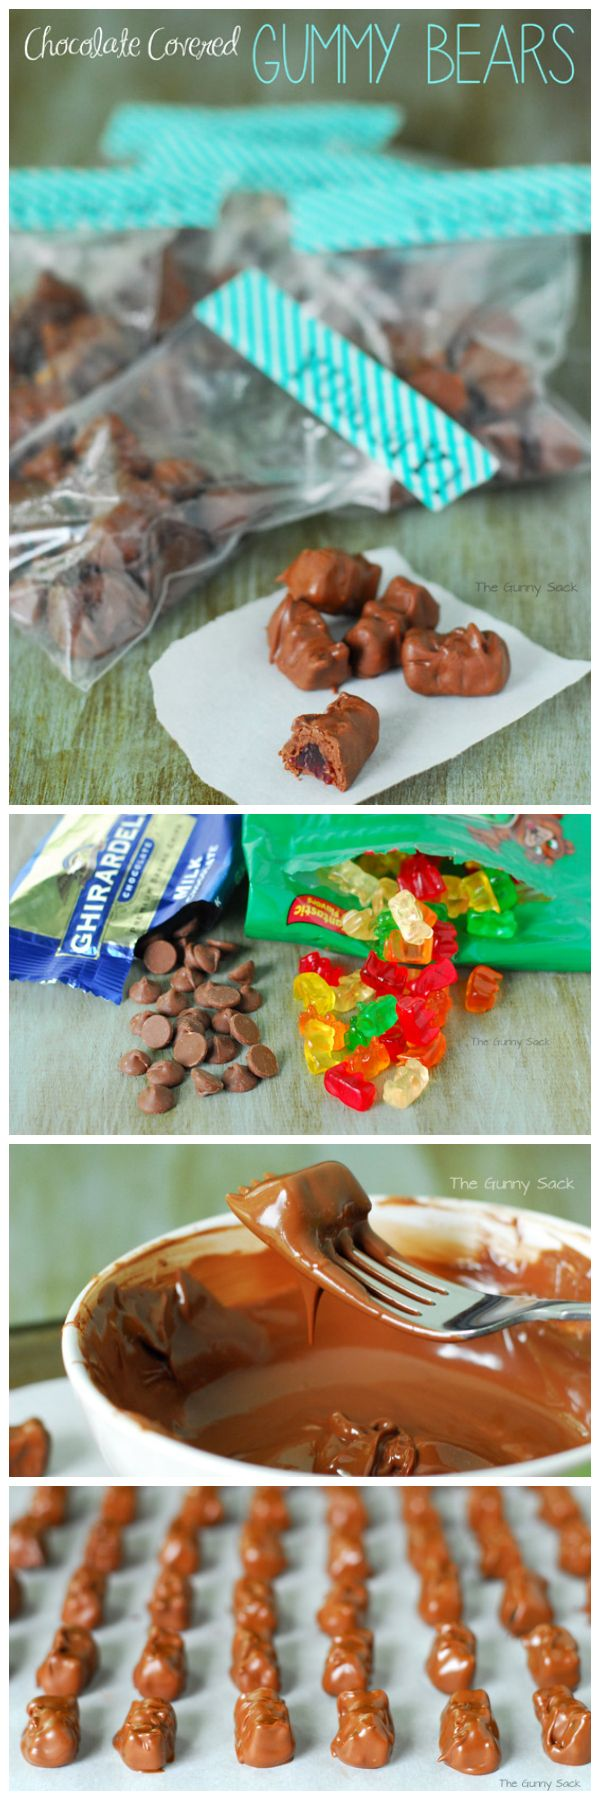 Best 20+ Chocolate covered gummy bears ideas on Pinterest ...